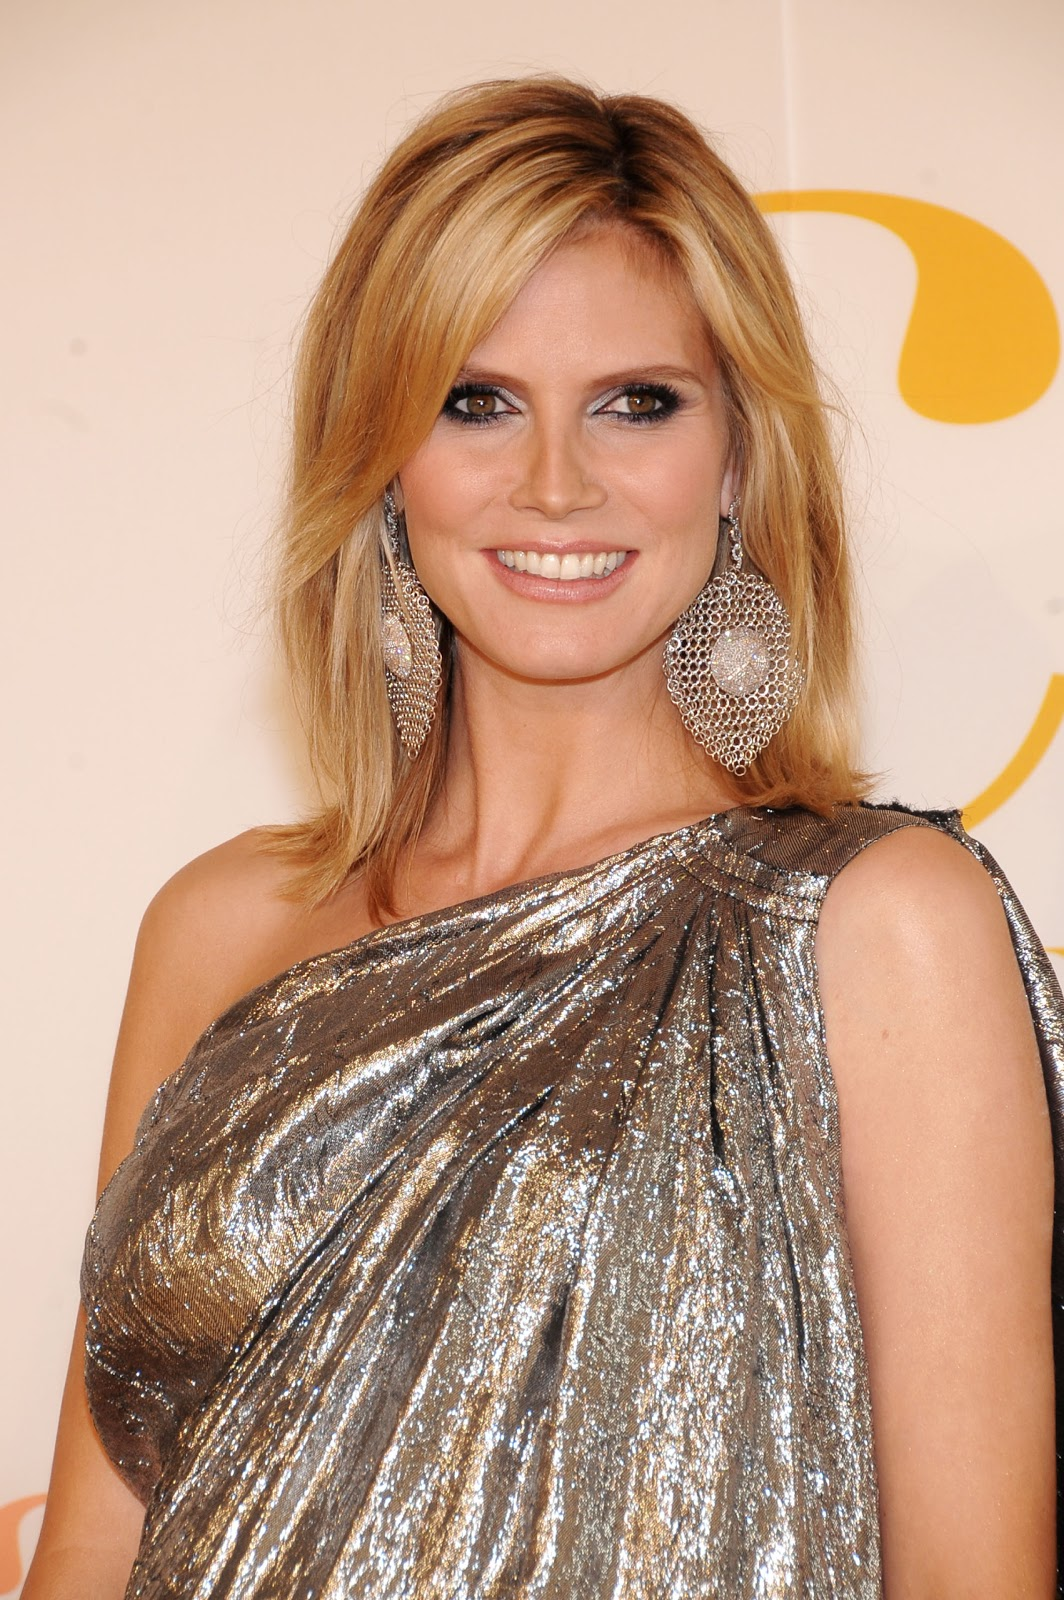 Heidi Klum Hairstyle pics. 1063 x 1600.Haircuts 35 Year Old Woman